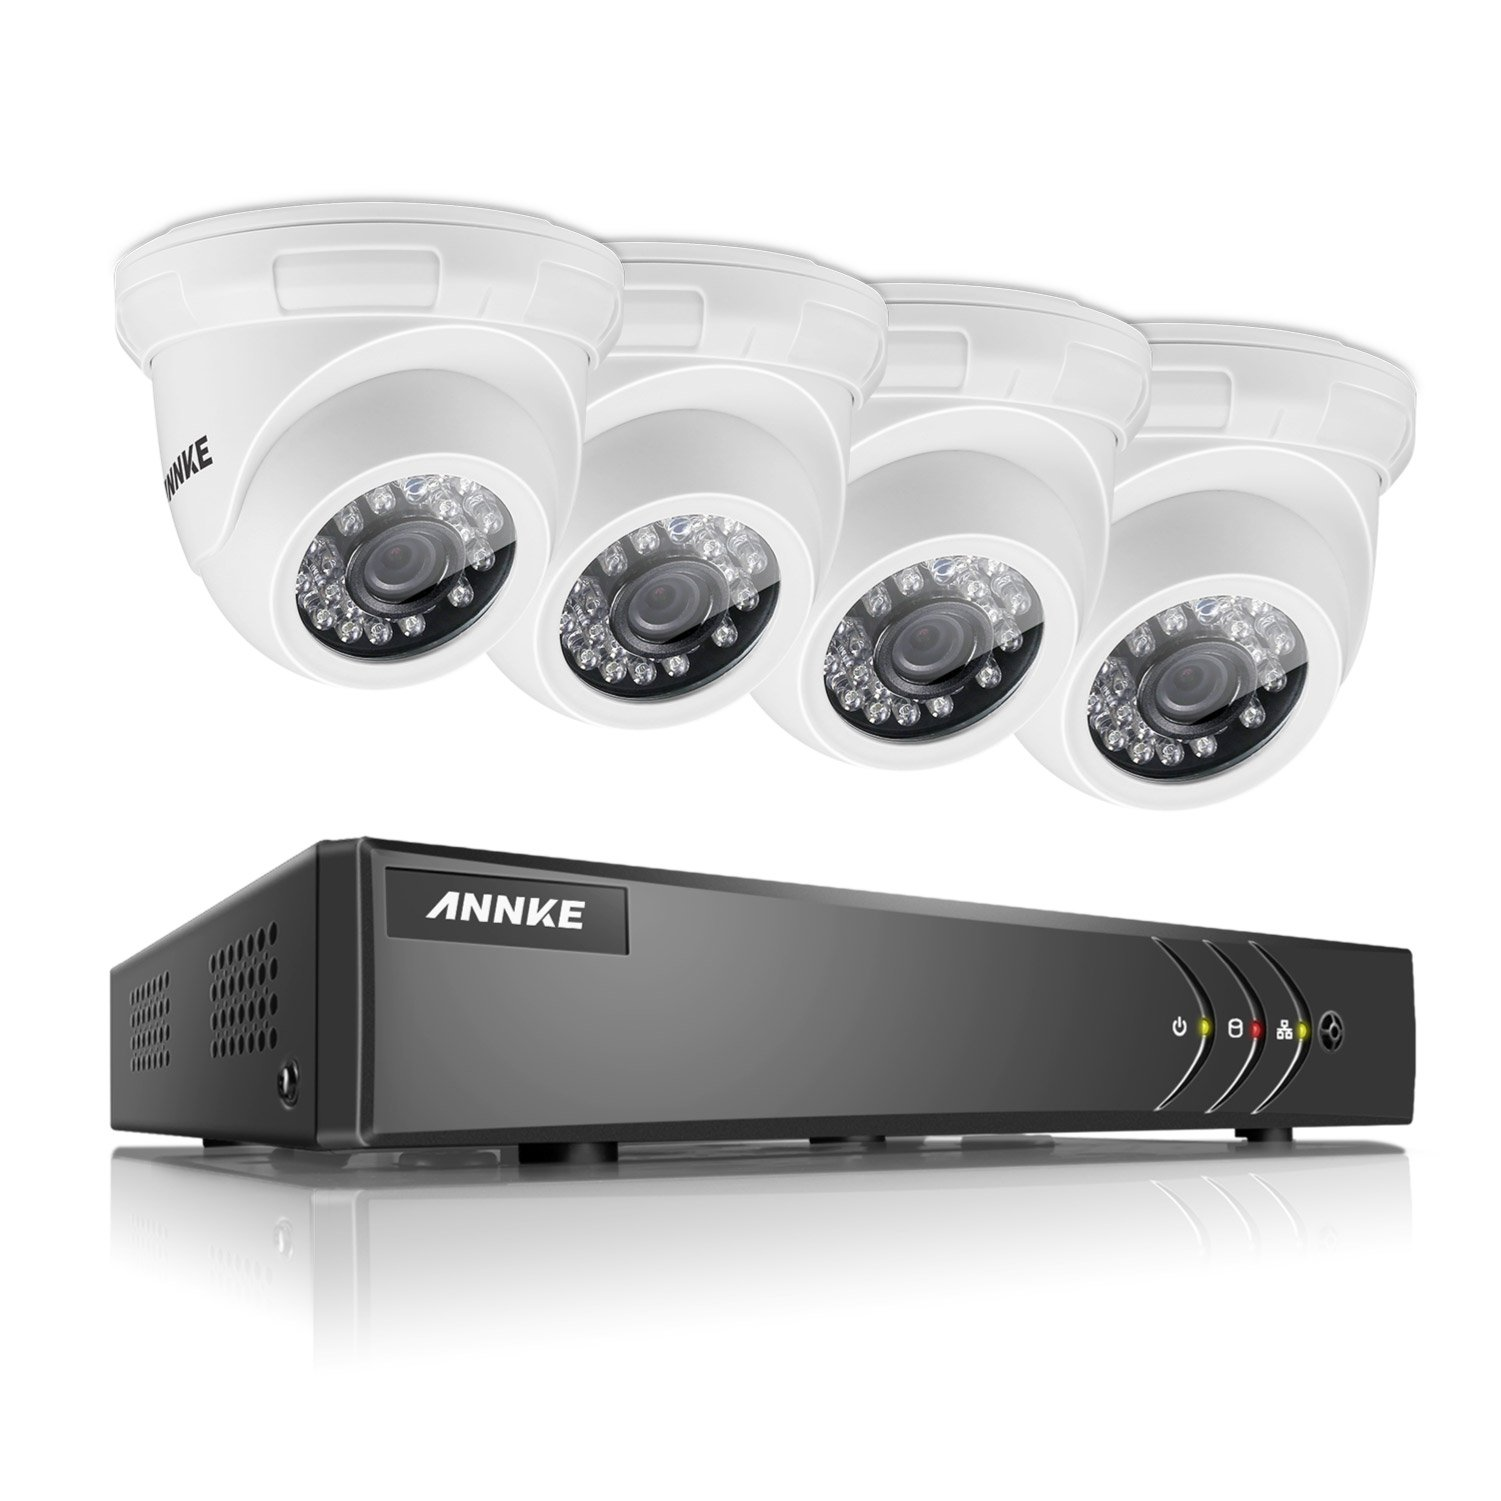 ANNKE 8CH CCTV Camera Systems 1080P Lite H.264+ DVR and (4) 720P Outdoor Fixed Dome Cameras with IP66 Weatherproof Day/Night Vision, Smart playback, Minimize false alerts